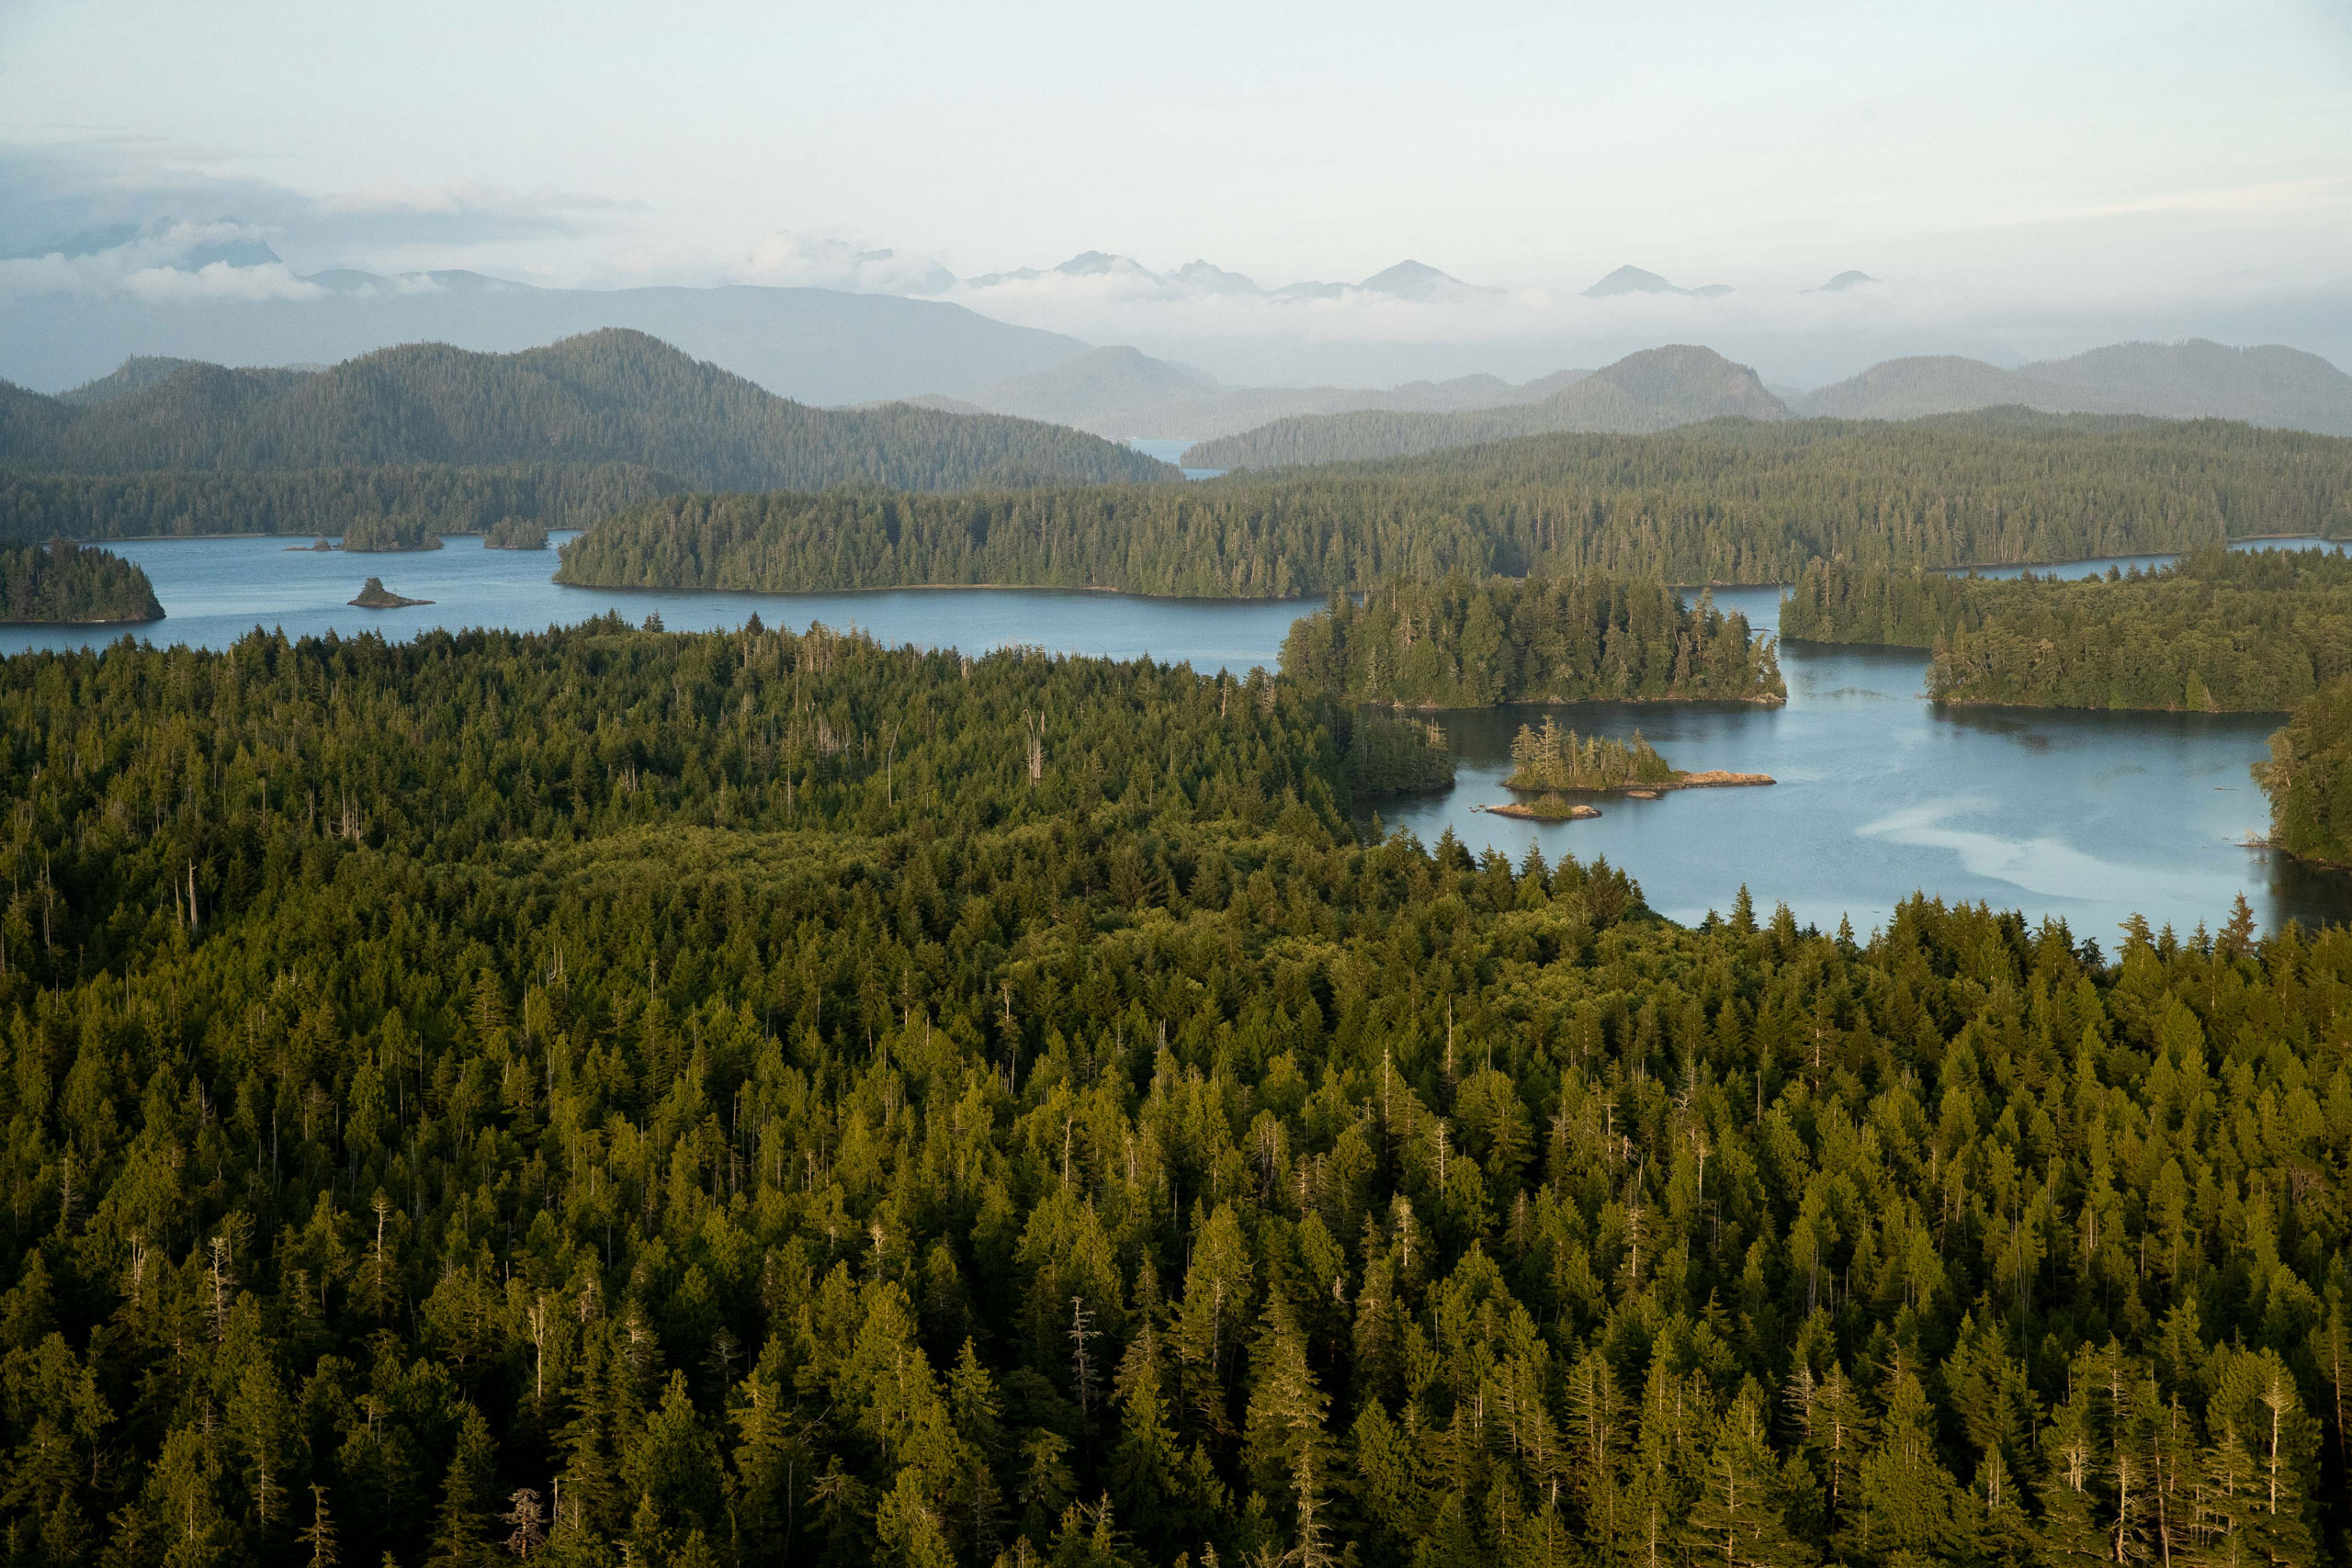 Planning a trip this year? Beautiful Vancouver Island is the perfect destination.